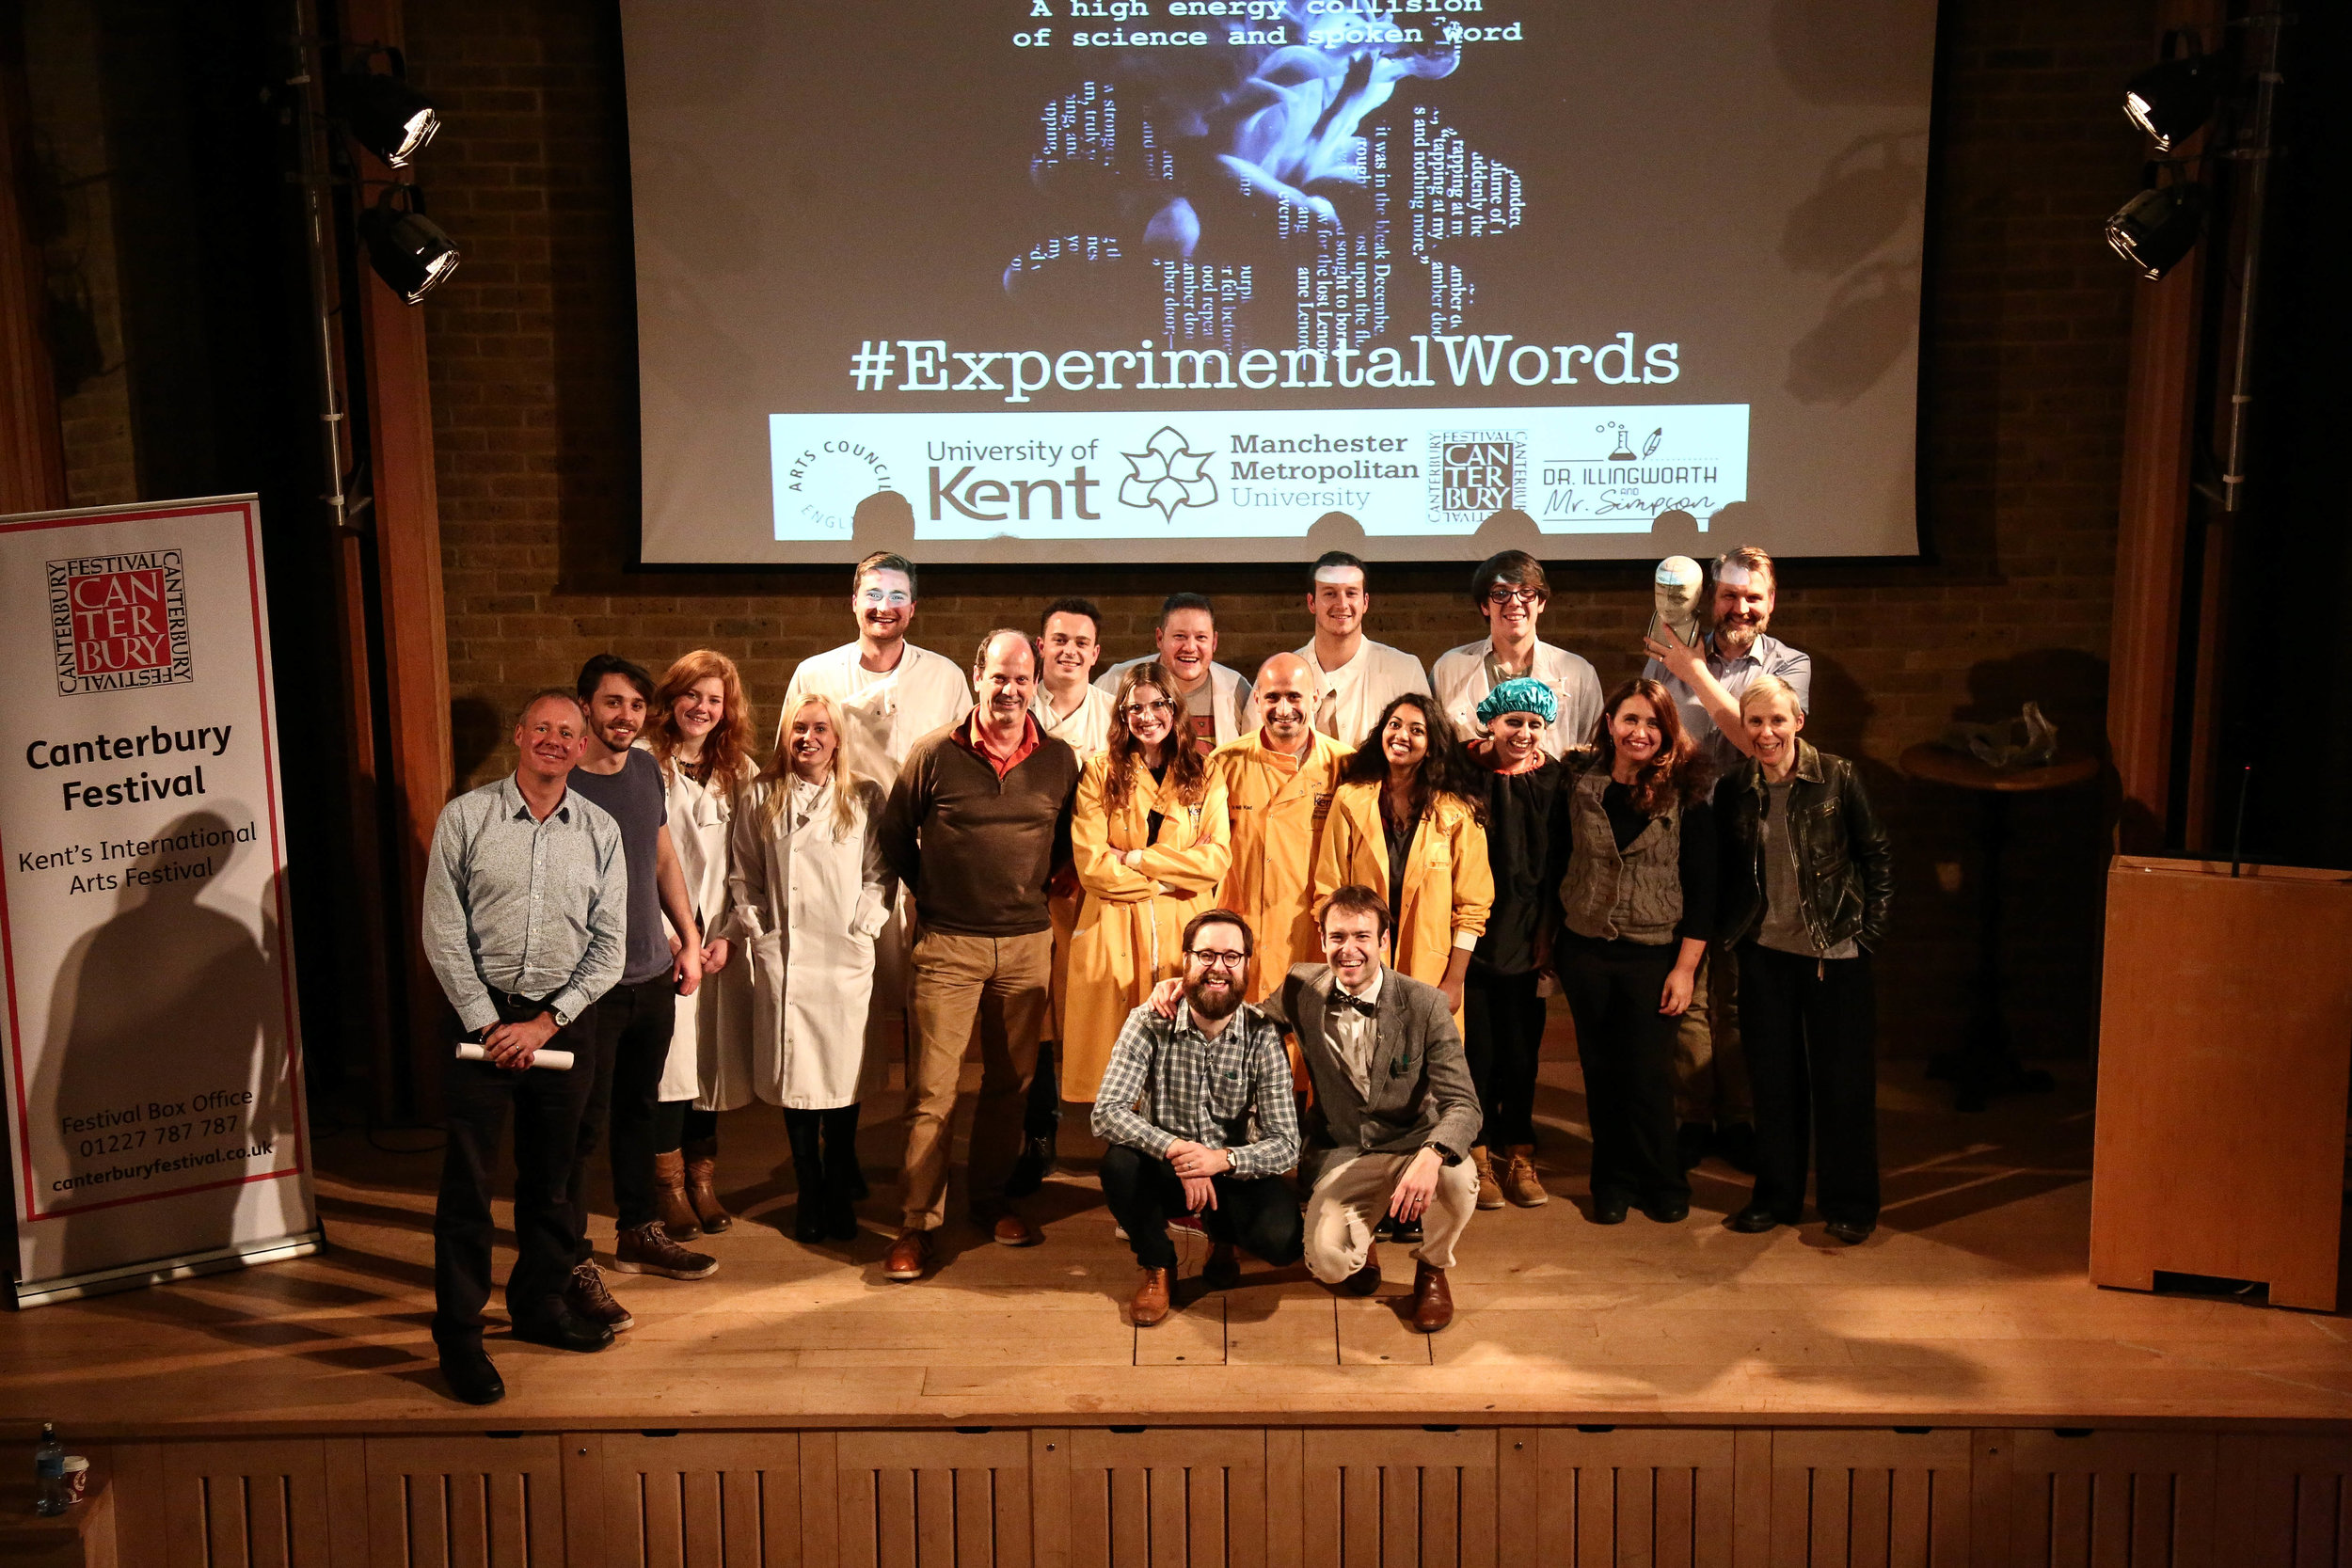 Scientists & Poets from Experimental Words Canterbury - photo from Light Tone Studios.